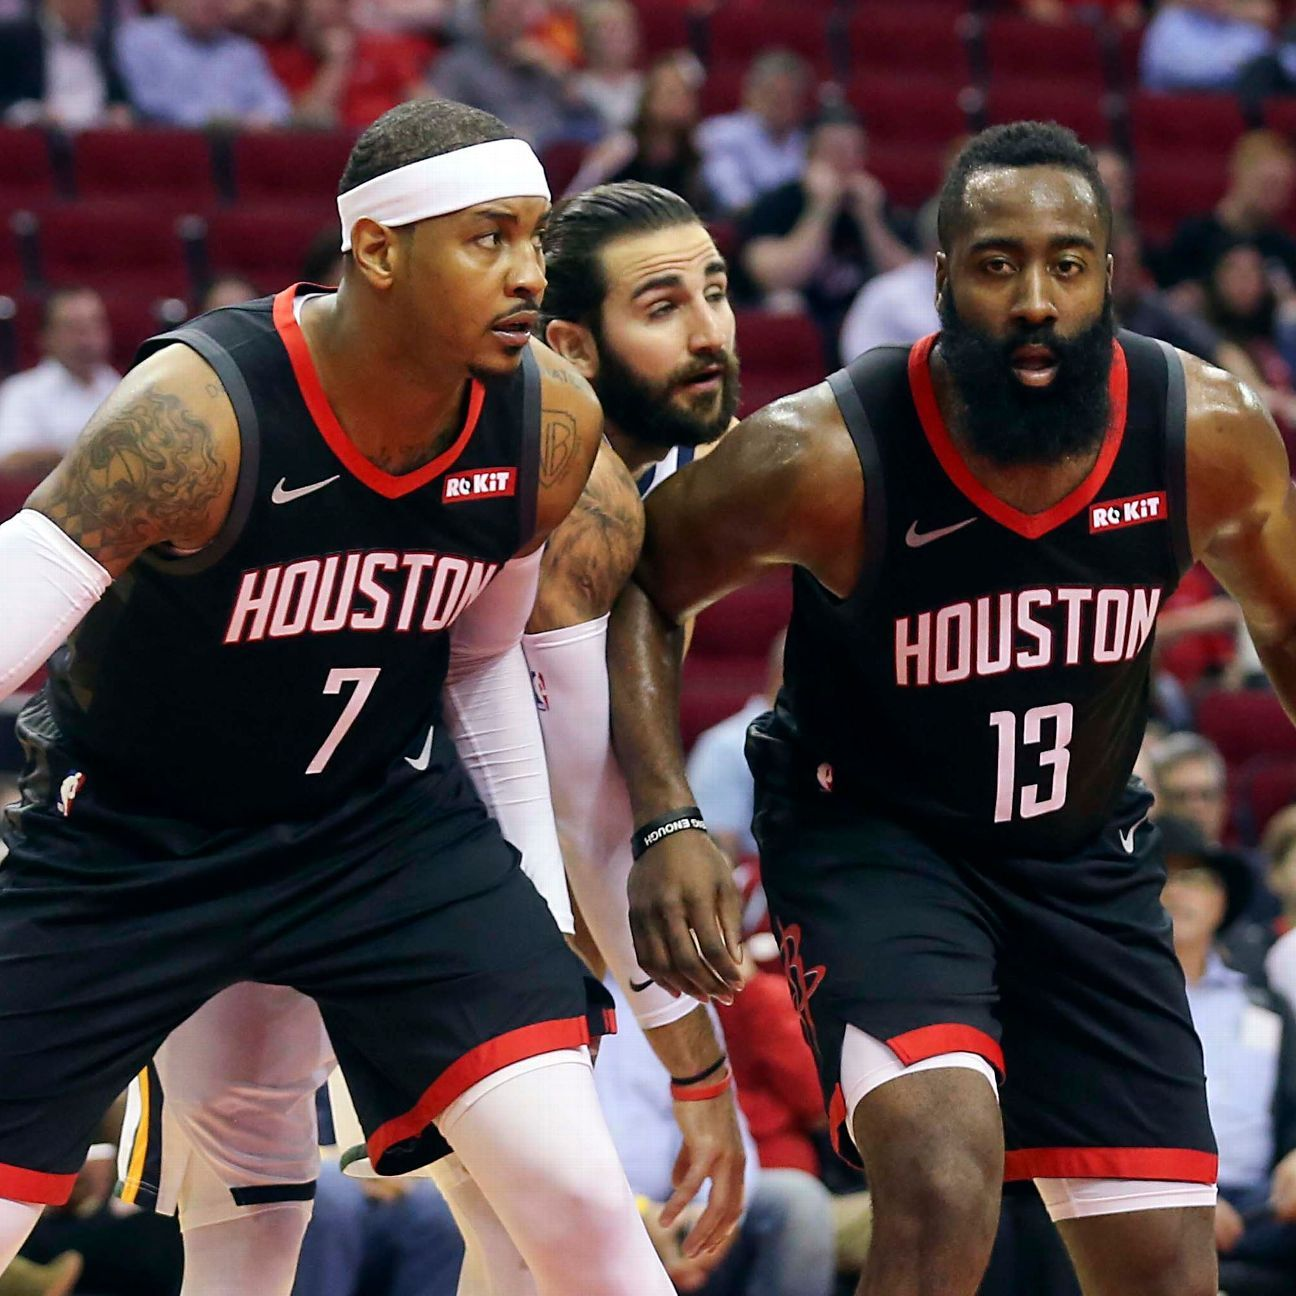 Houston Rockets' James Harden Says Carmelo Anthony Can